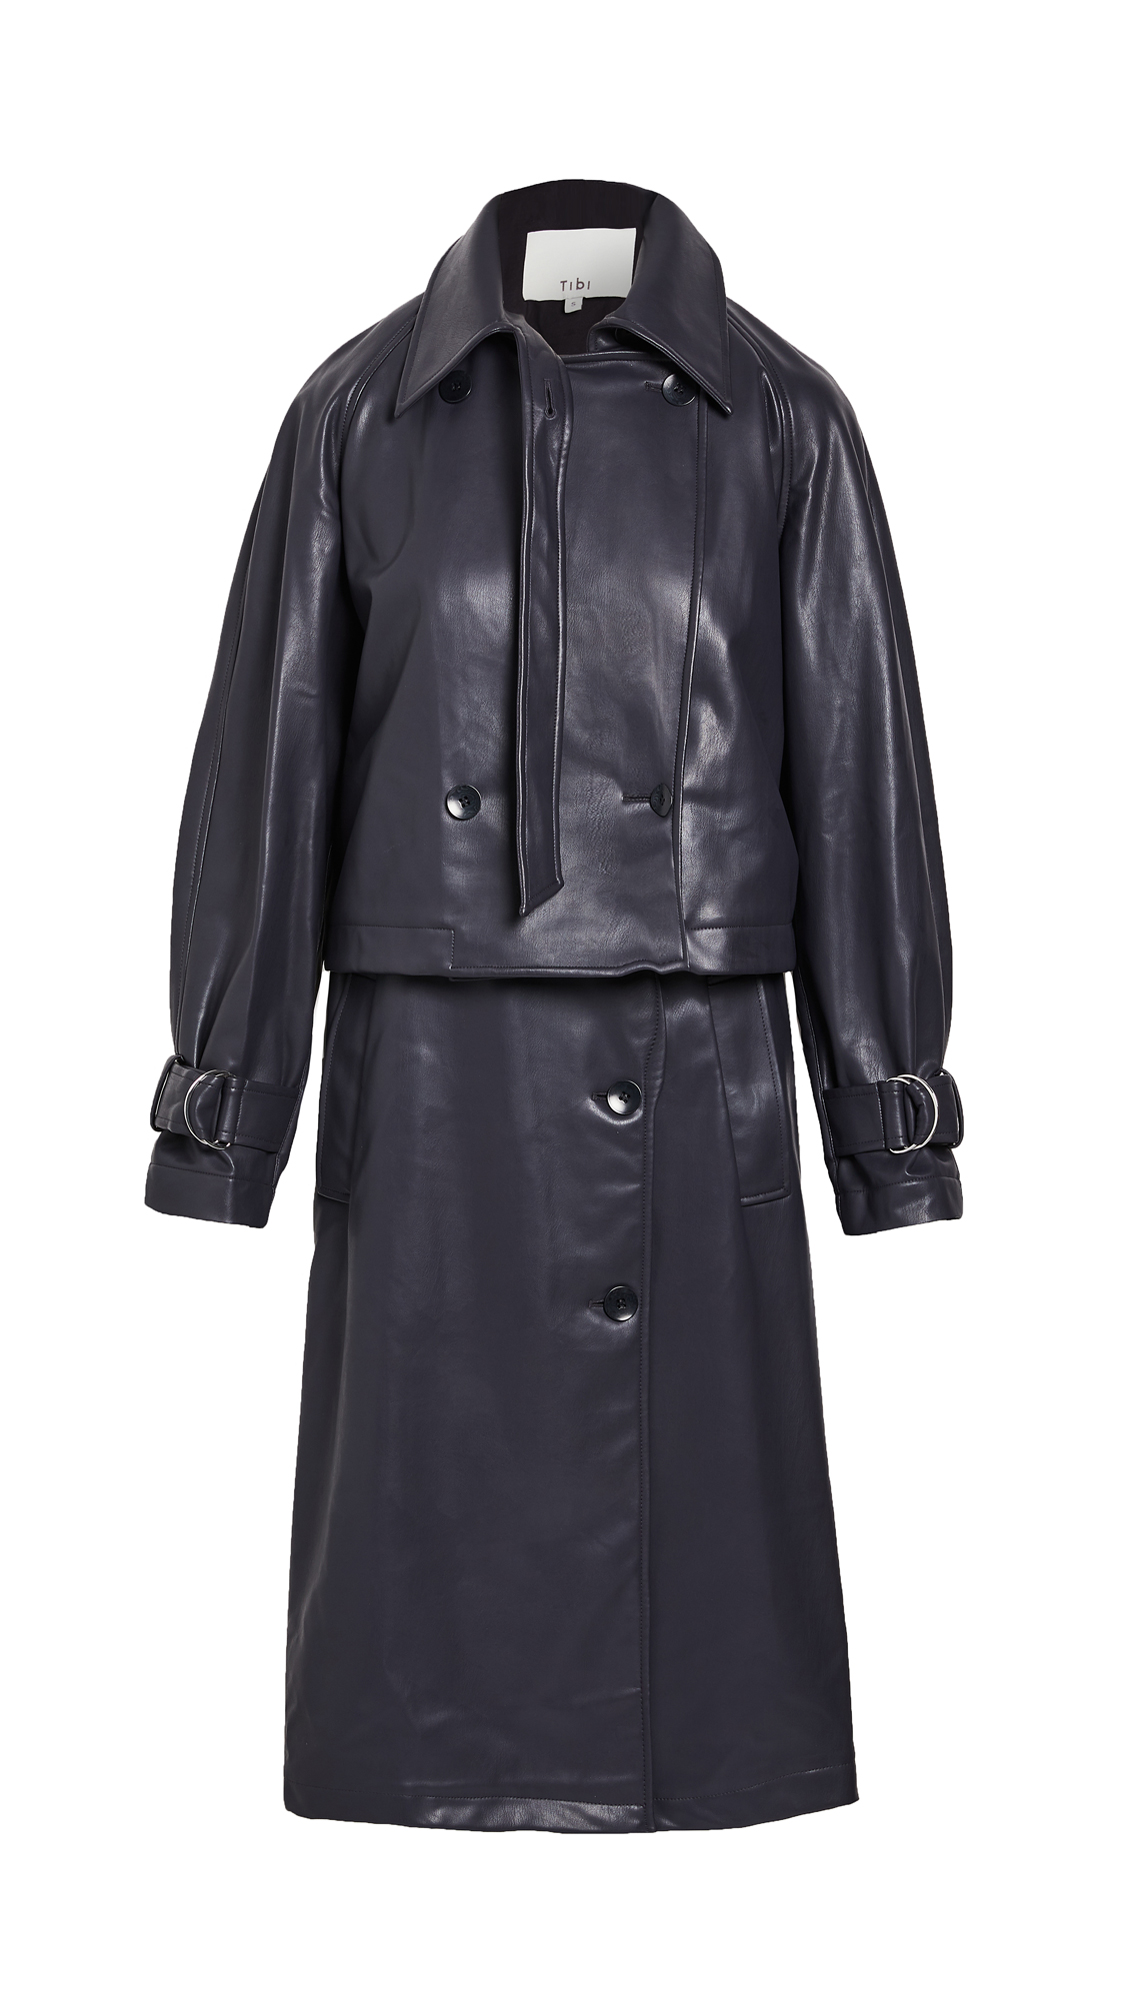 Tibi Convertible Trench Coat with Removable Belt